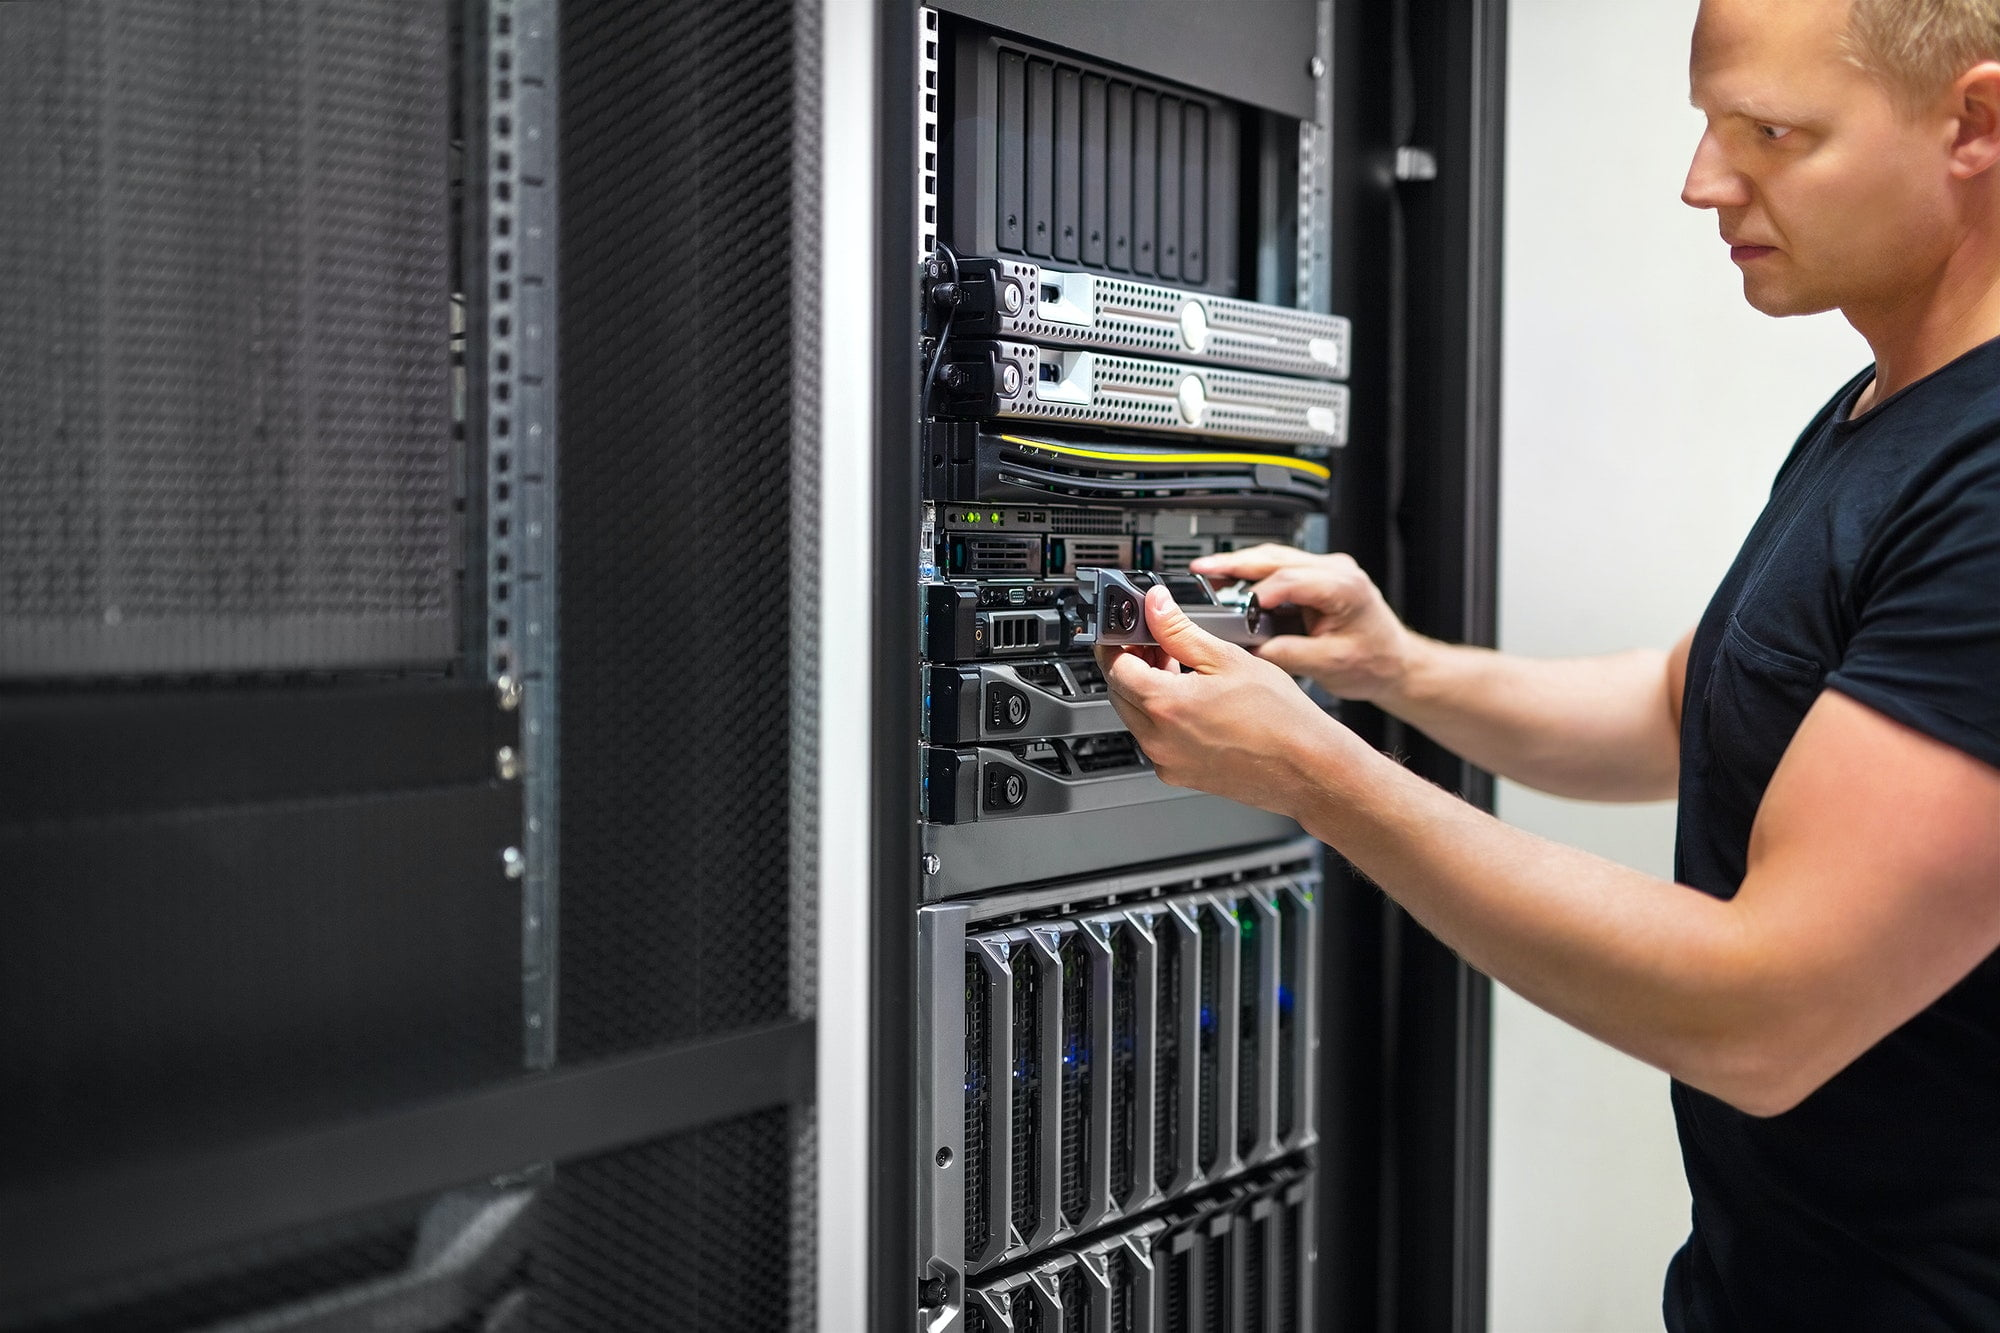 IT Consultant Monitors Servers In Data Center